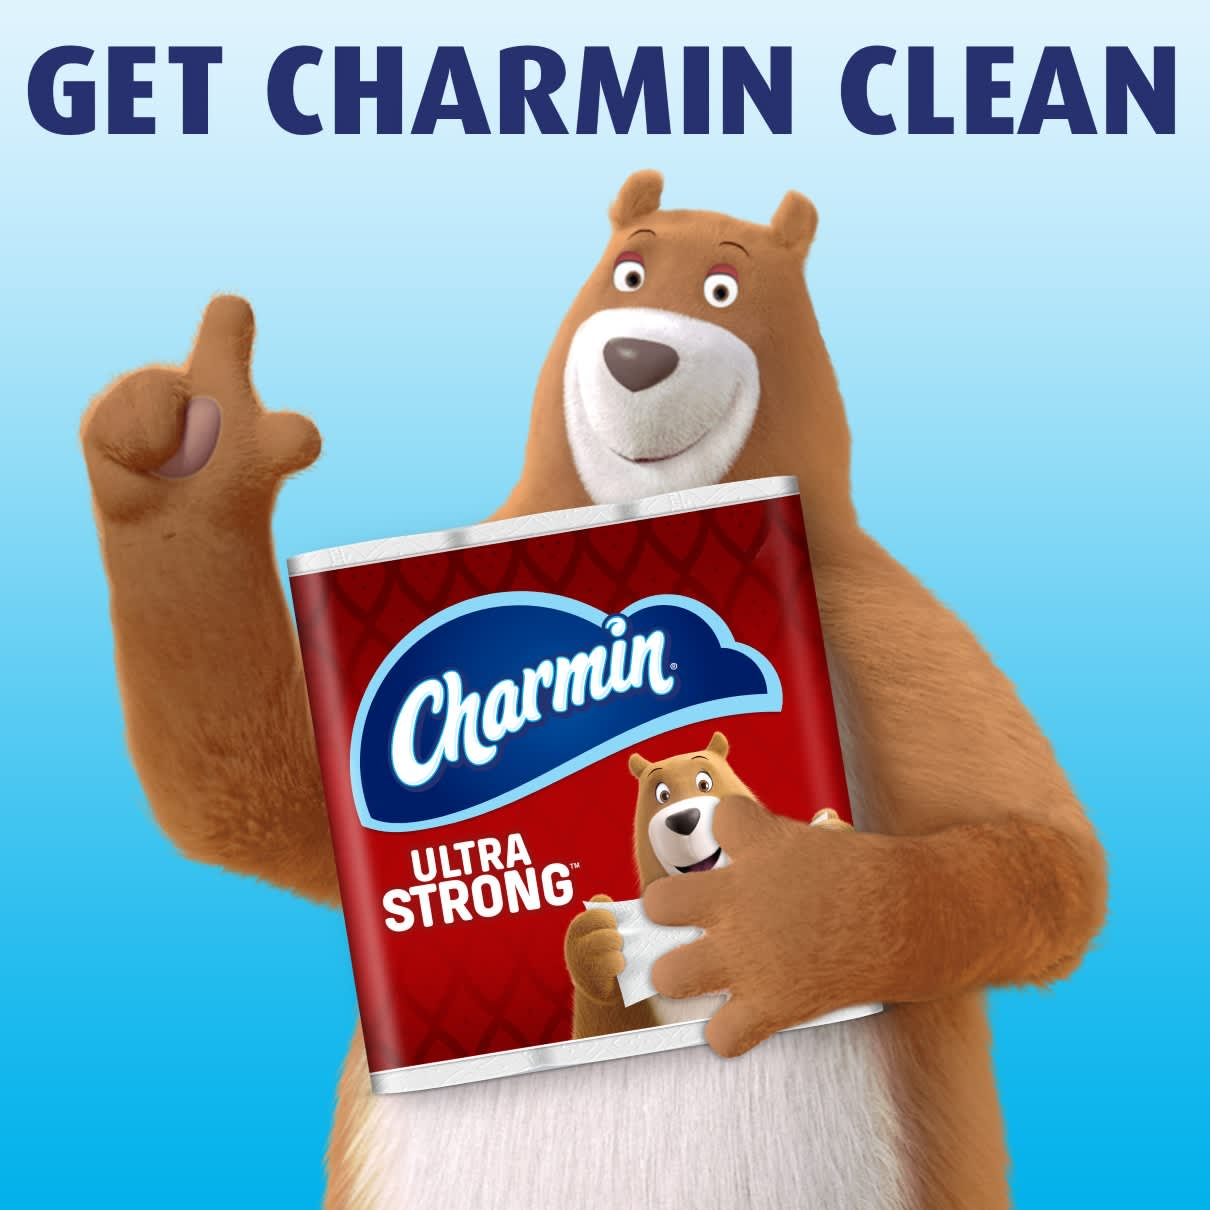 Clean better with ultra strong toilet paper